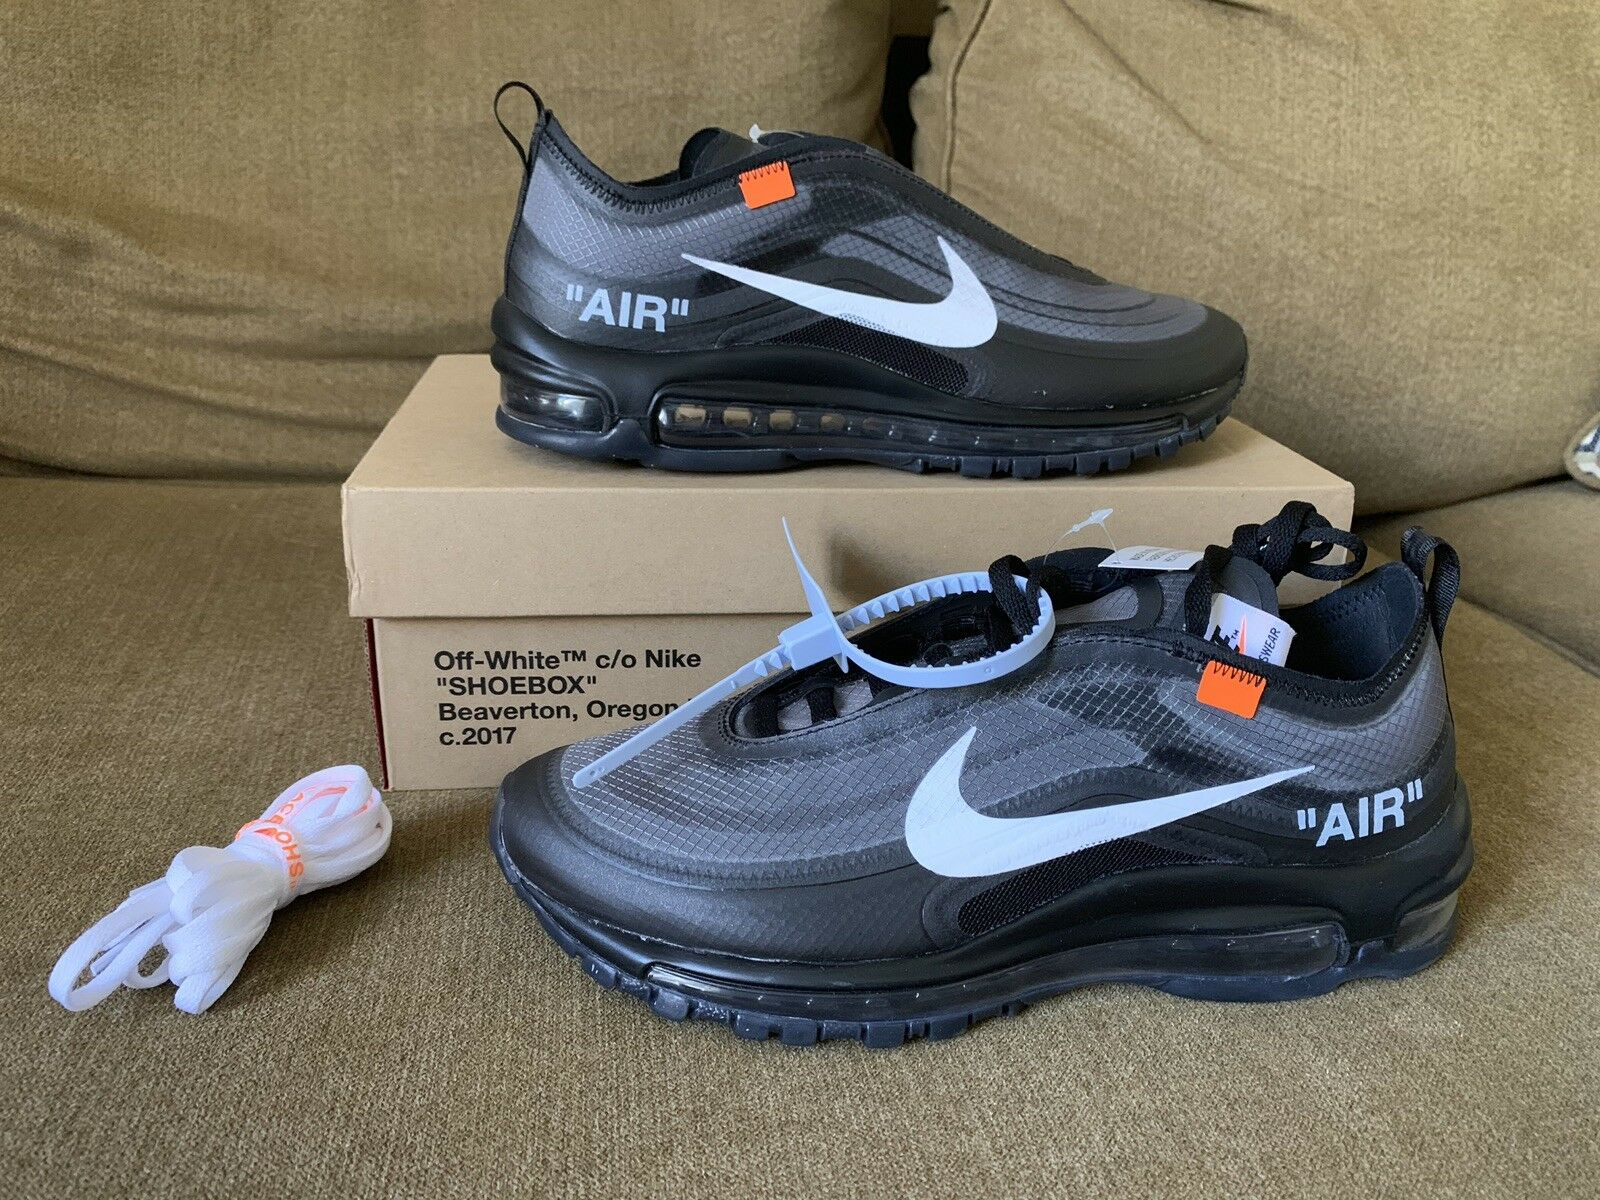 The 10  Nike Air Max 97 SZ 7.5 OG  OFF WHITE AJ4585-001 BLACK CONE-BLACK-WHITE